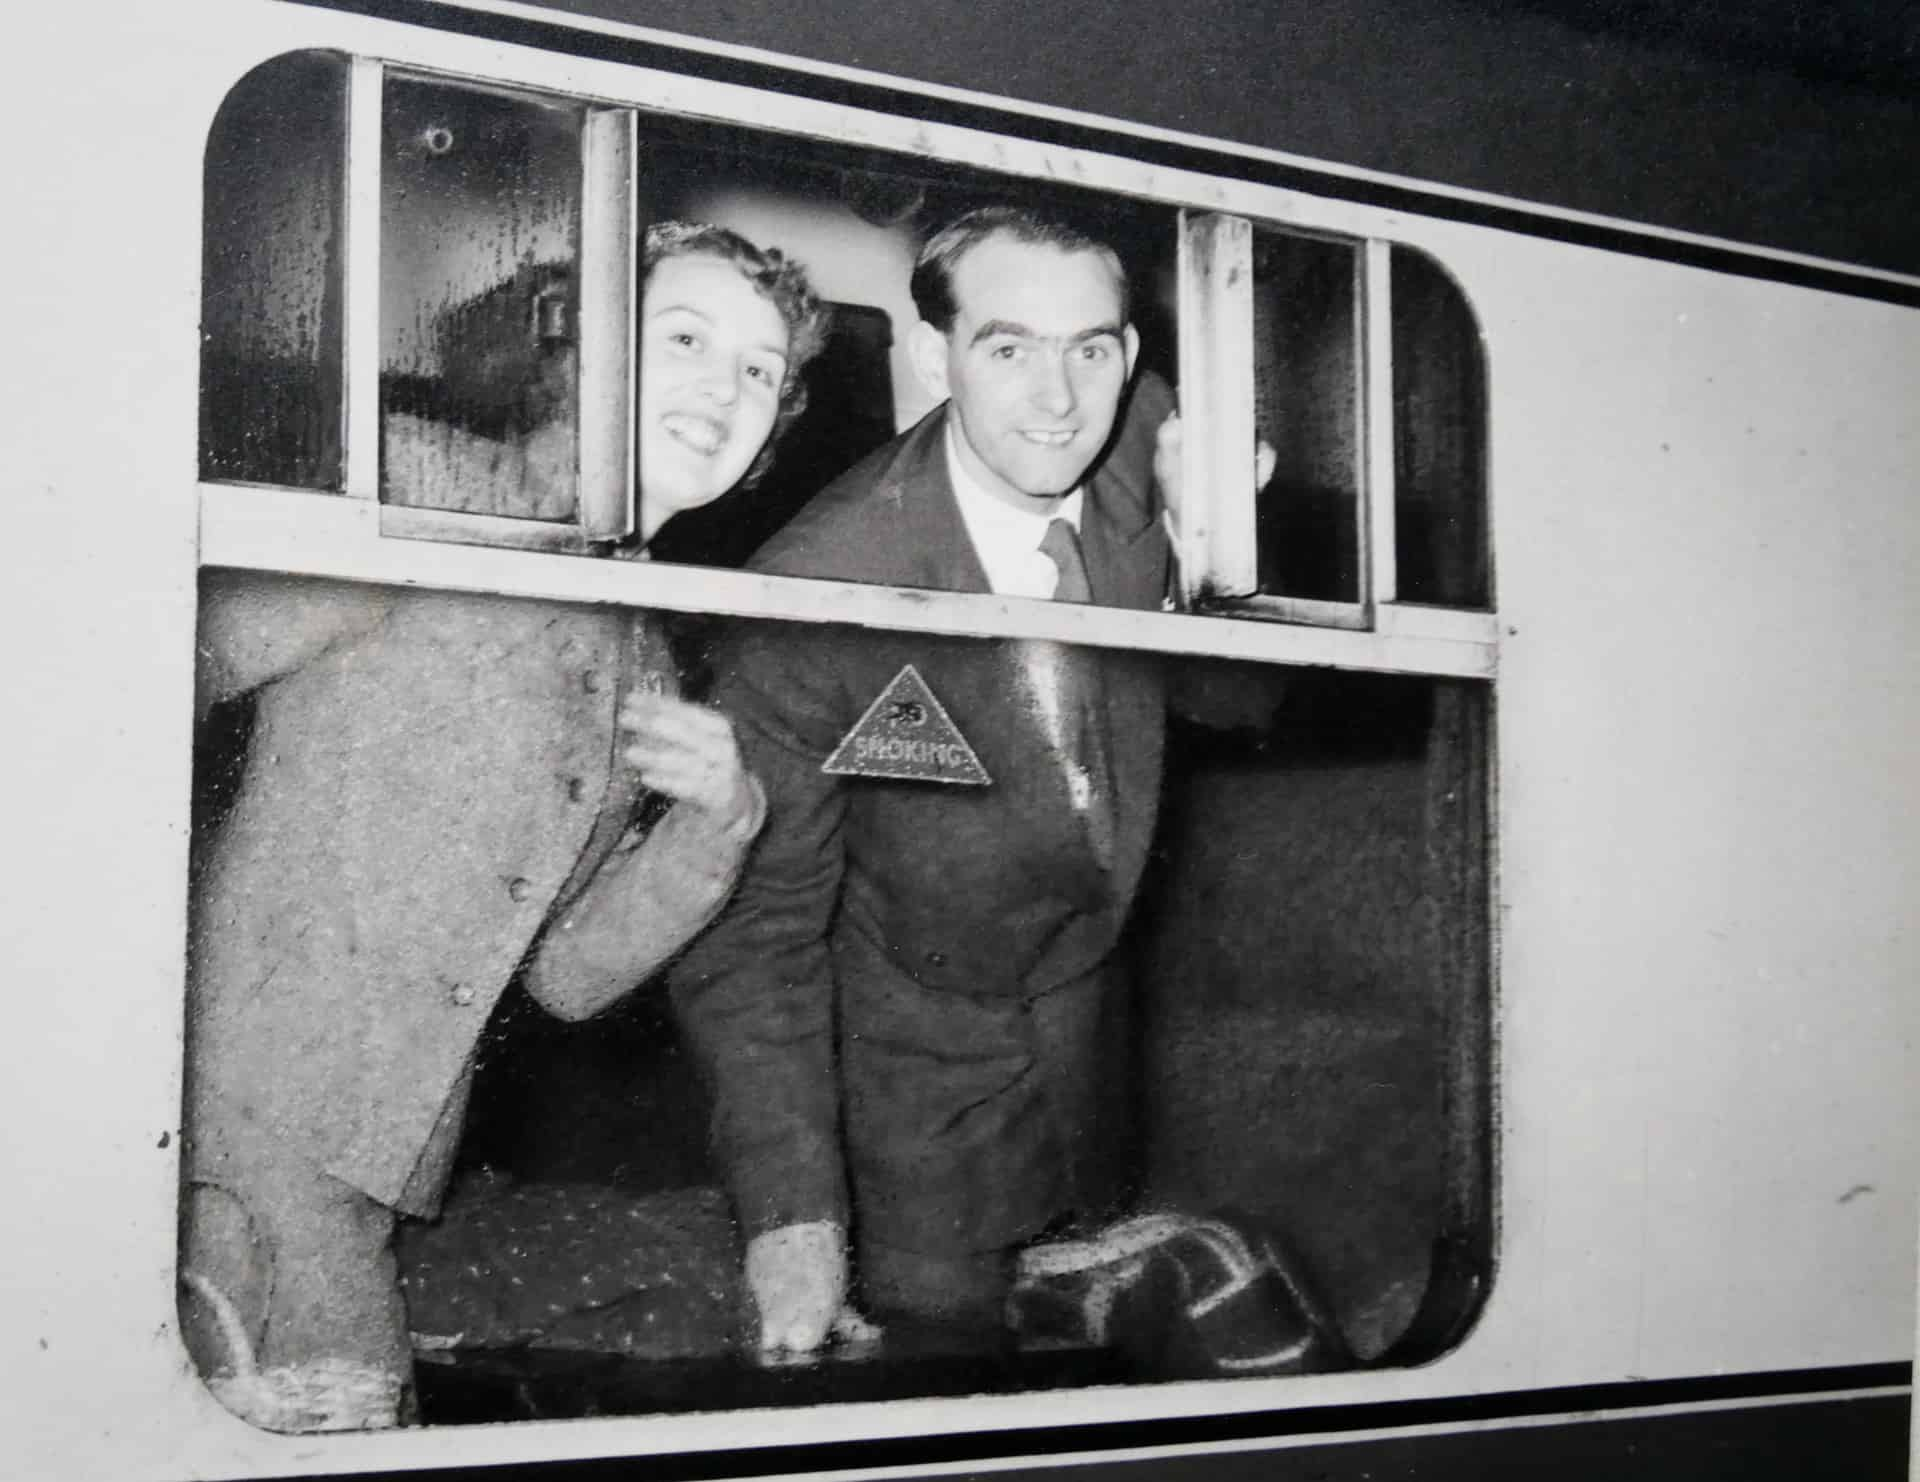 Marion and George leave for their honeymoon in 1955